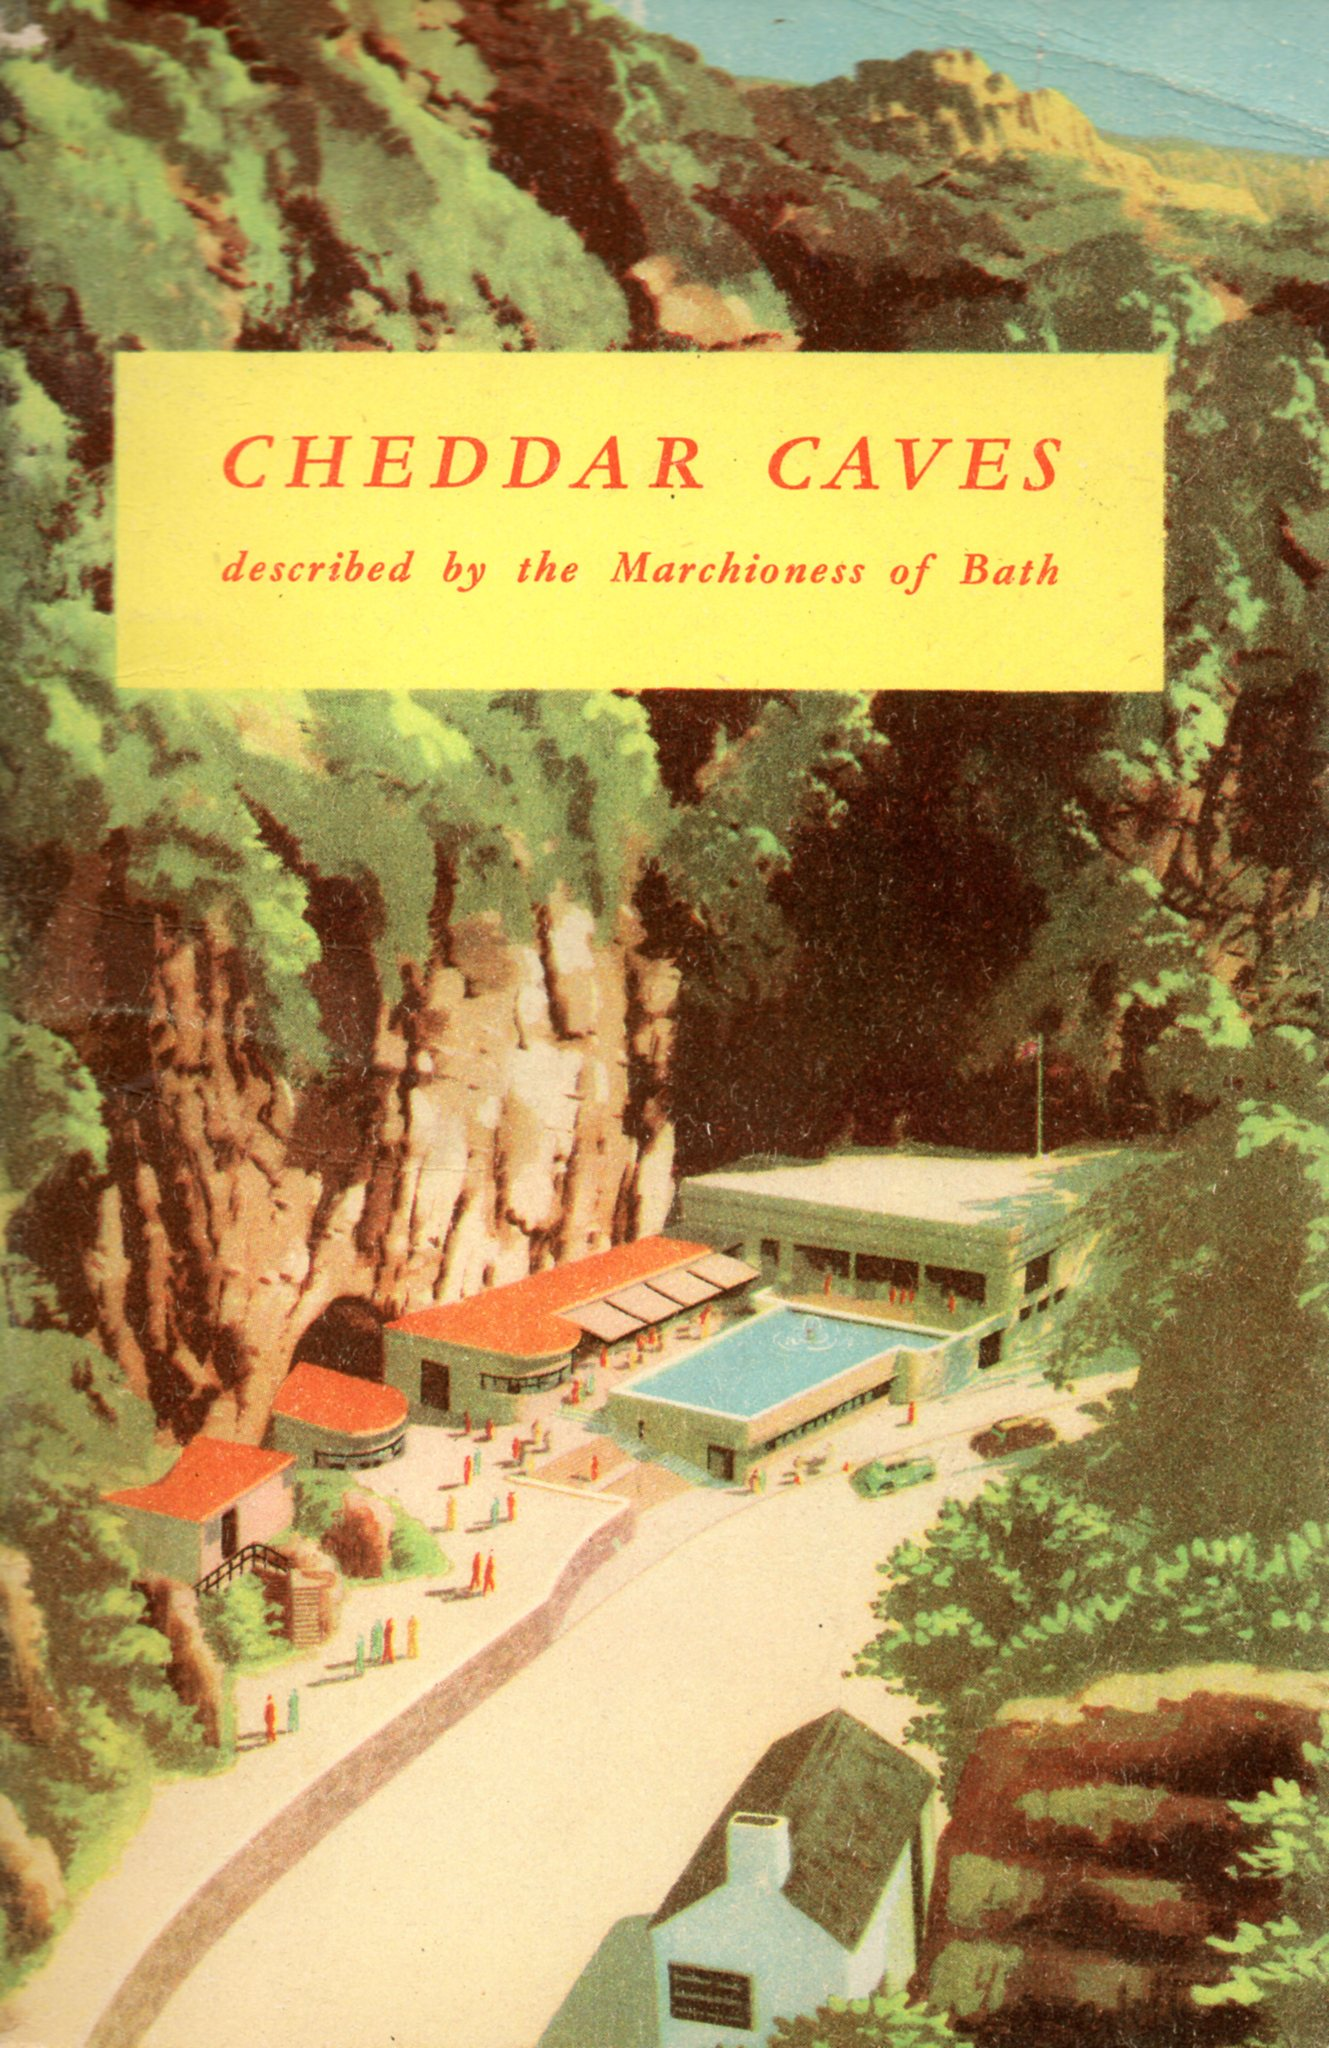 [USED] Cheddar Caves - described by the Machioness of Bath